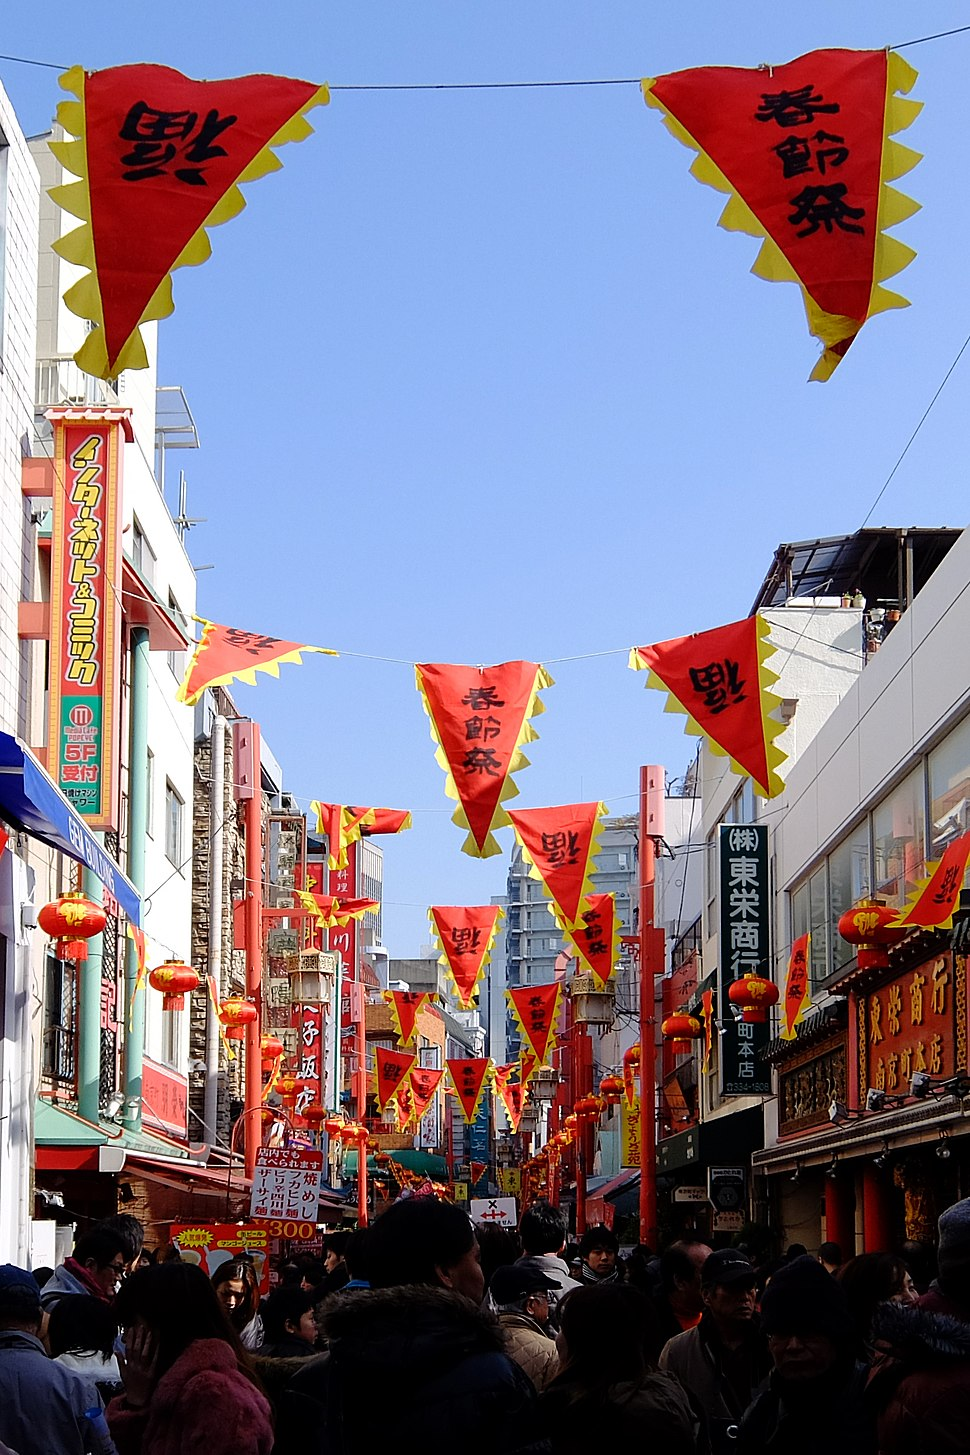 140201 Chinese New Year 2014 Kobe Chinatown Japan05s5